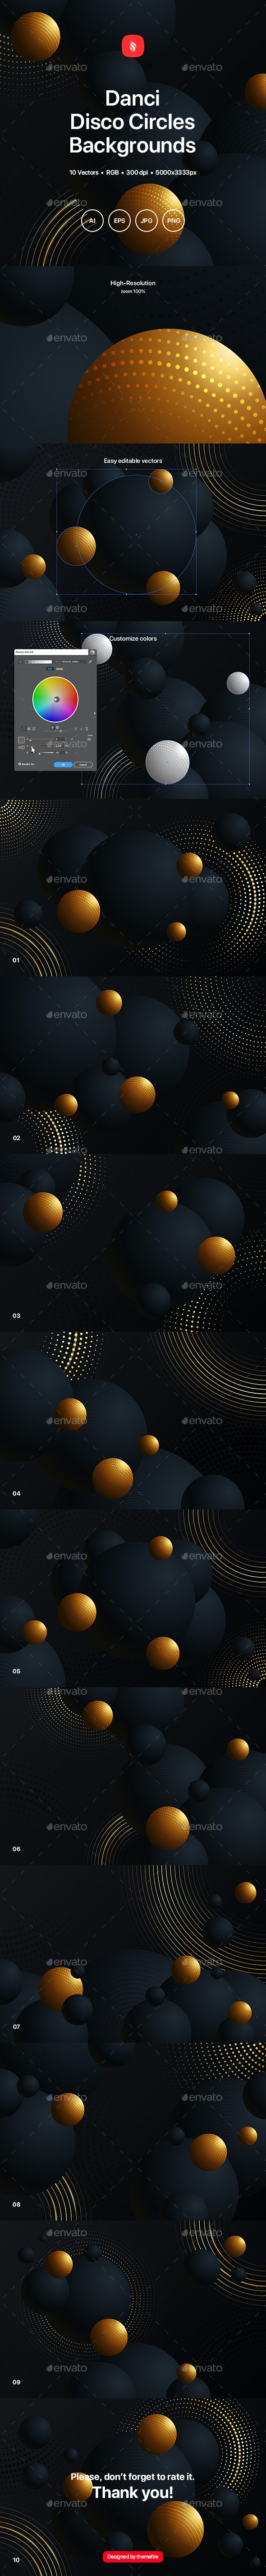 Danci - Disco Circles Backgrounds - Abstract Backgrounds